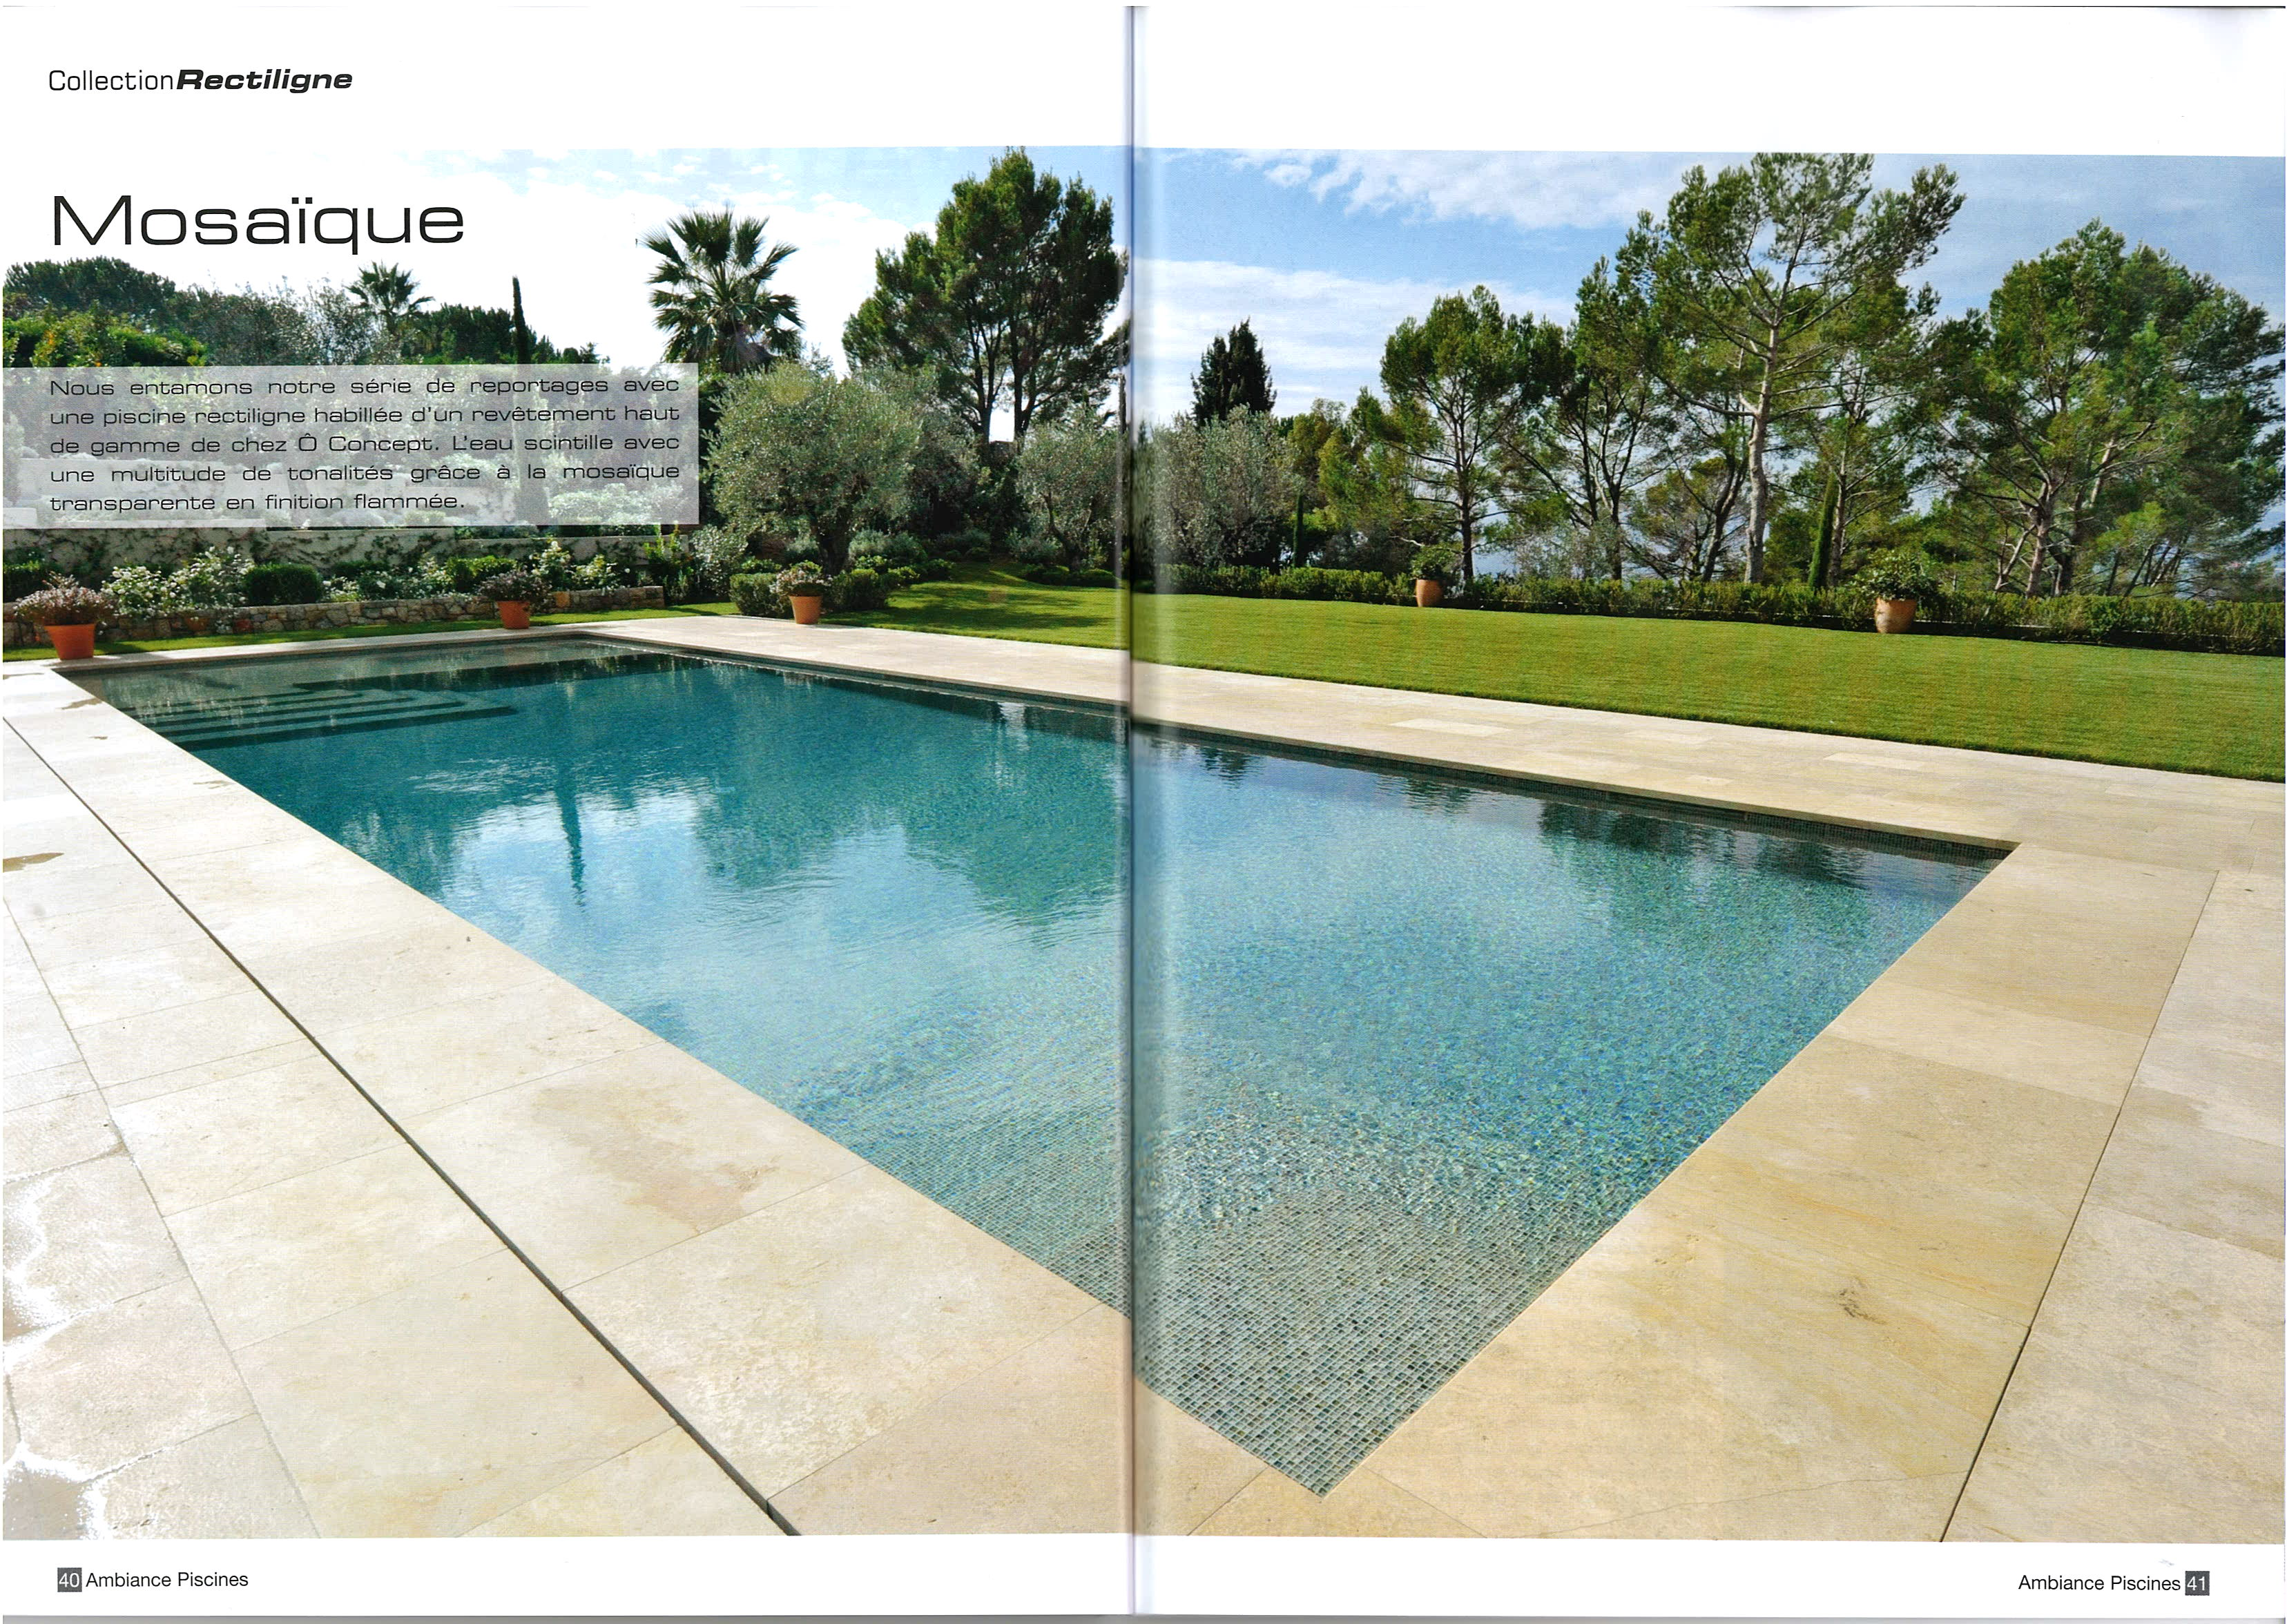 Presse concept for Ambiance piscine